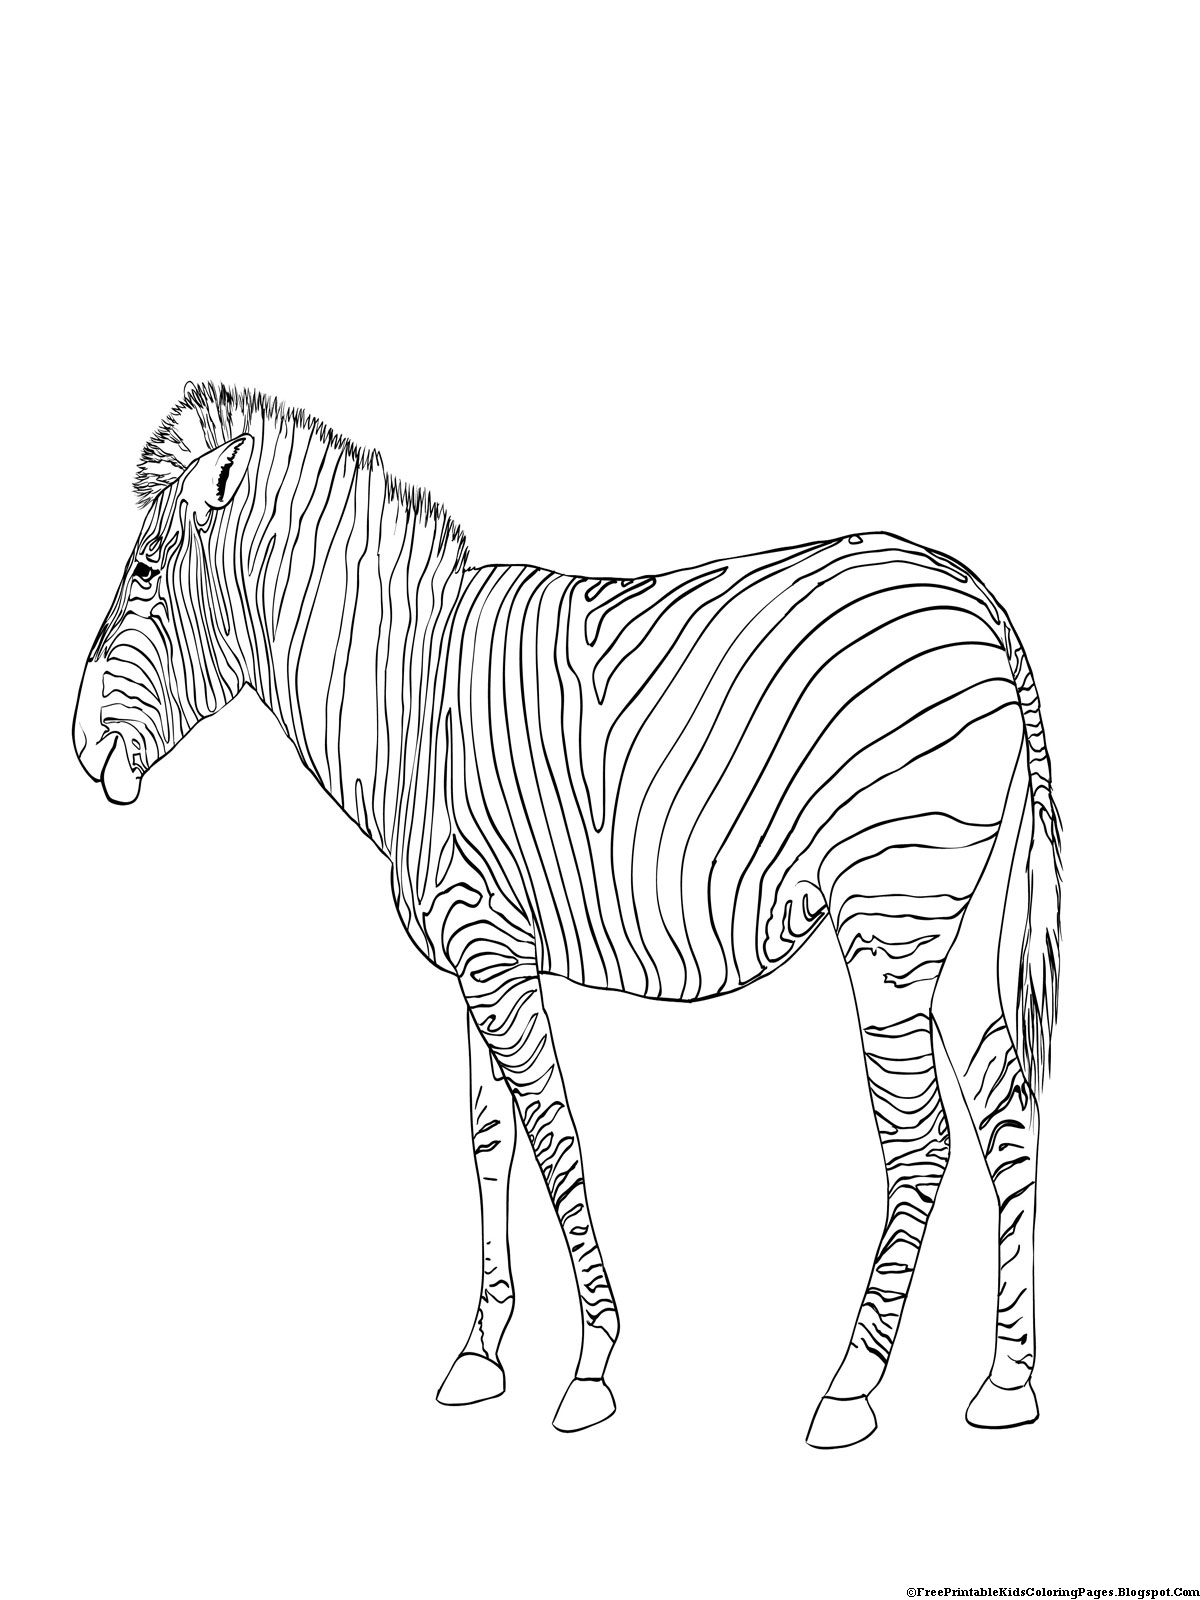 zebra coloring pages free printable free printable zebra coloring pages for kids pages printable free zebra coloring